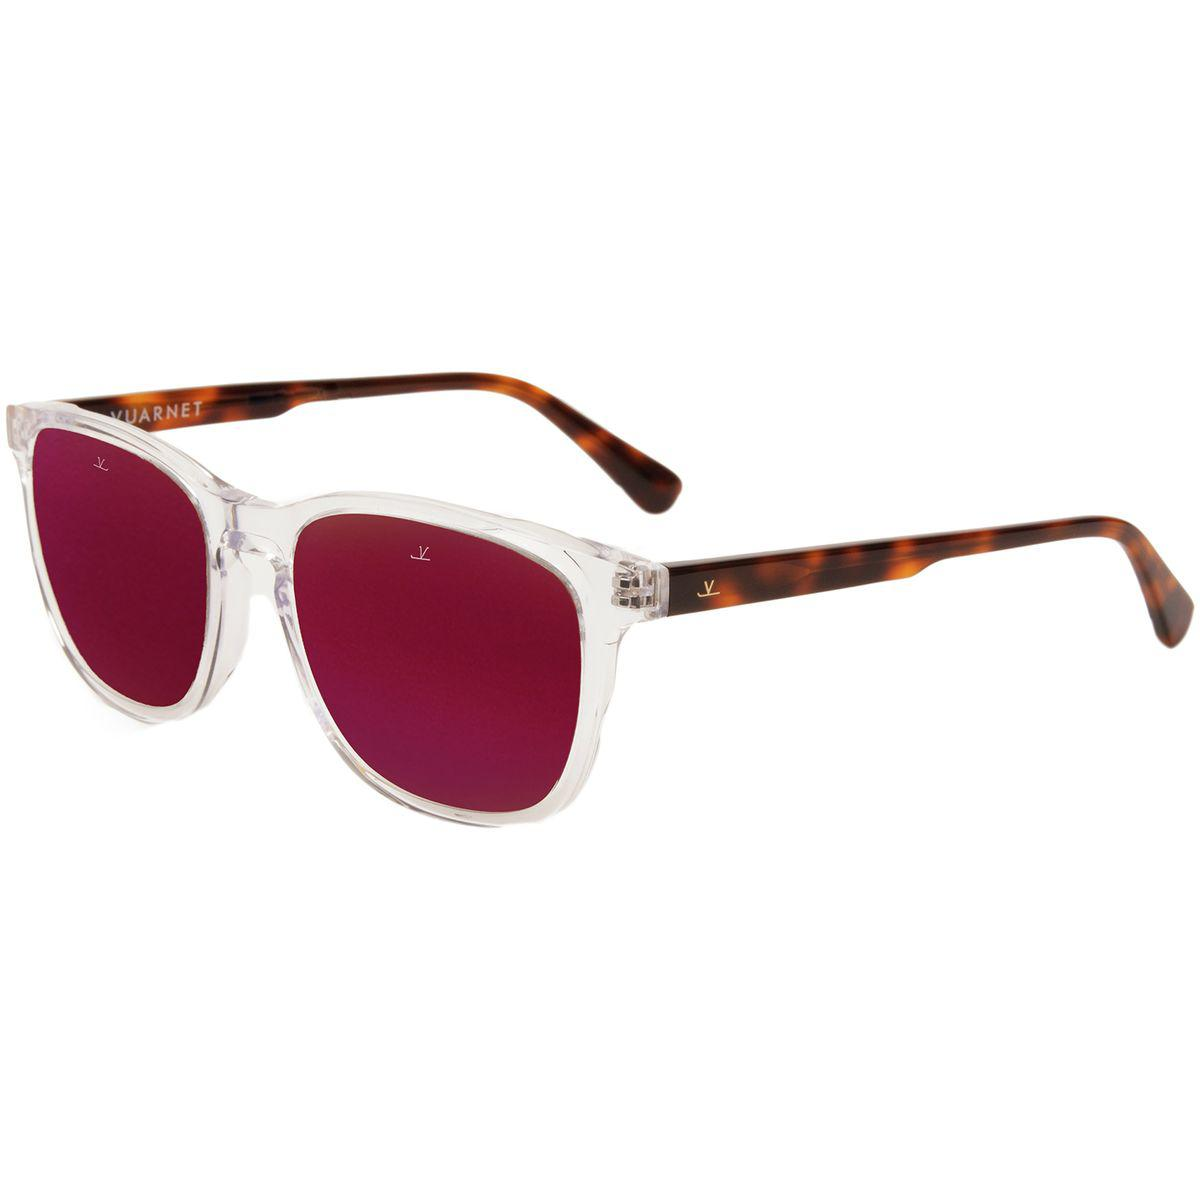 a5a34956714 Vuarnet - Multicolor Square District Vl 1618 Sunglasses for Men - Lyst.  View fullscreen